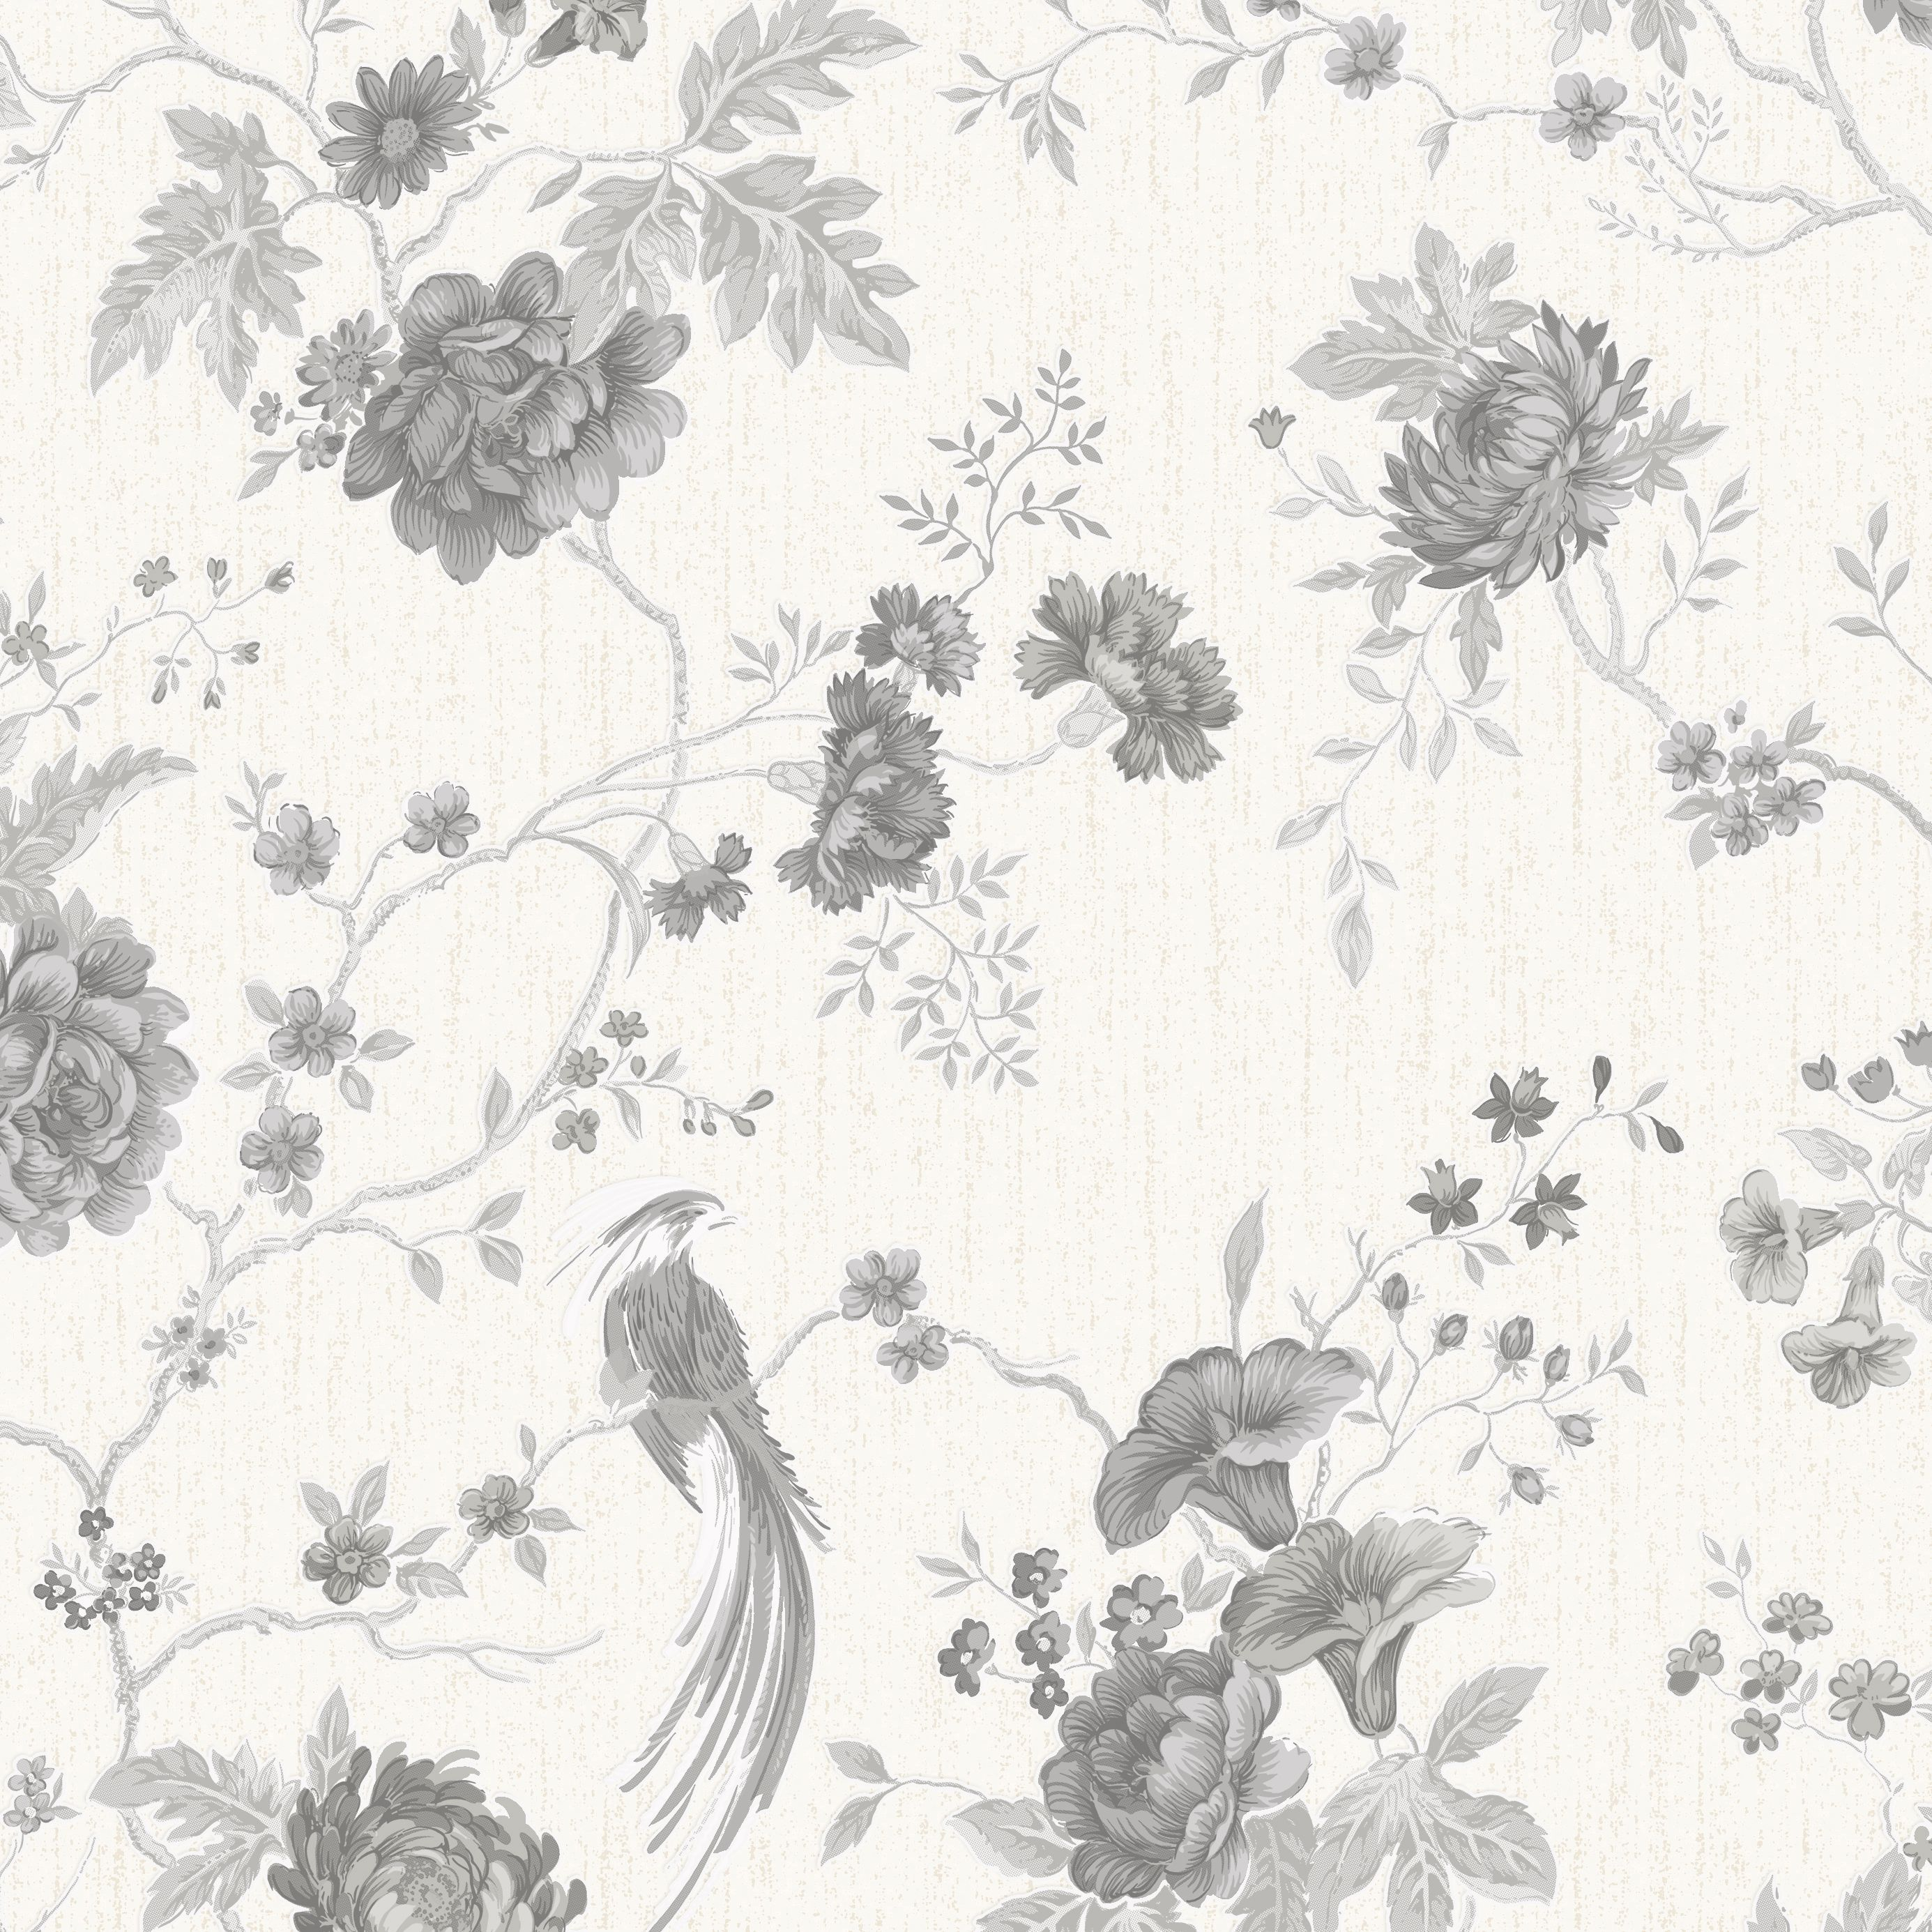 Kitchen Wallpaper At B Q: Graham & Brown Julien Macdonald Exotica White & Silver